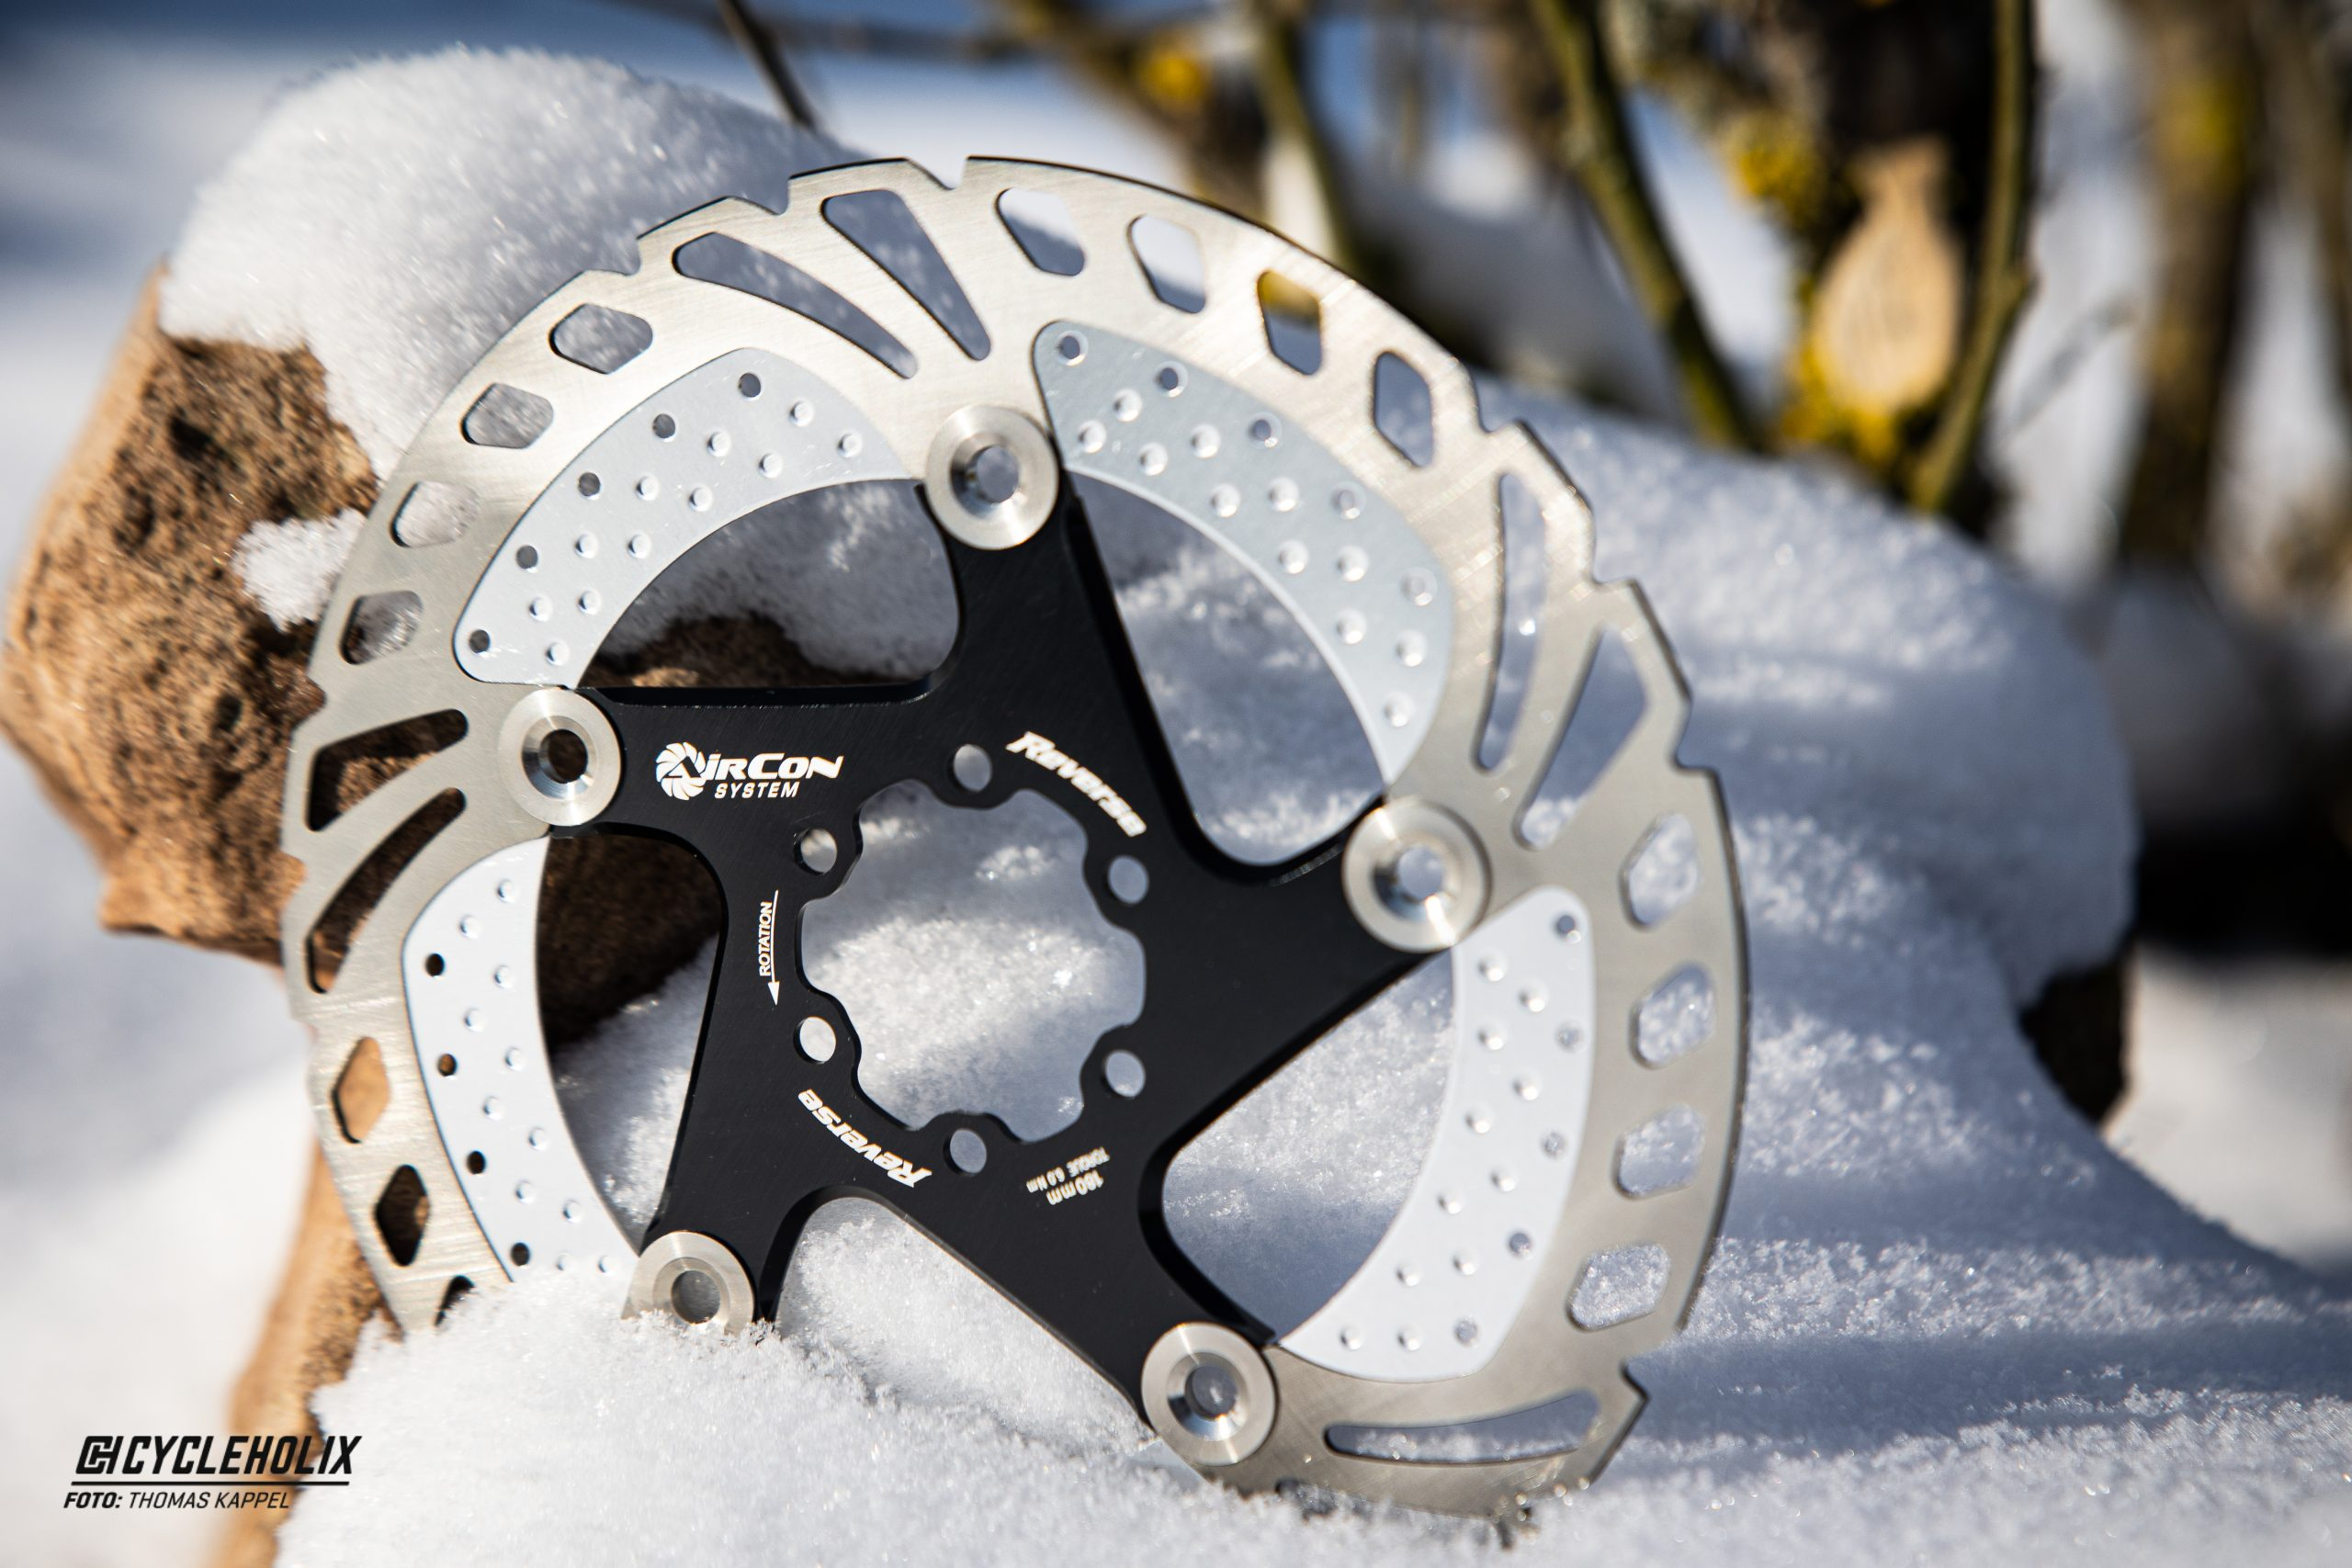 reverse components 8 scaled Cycleholix